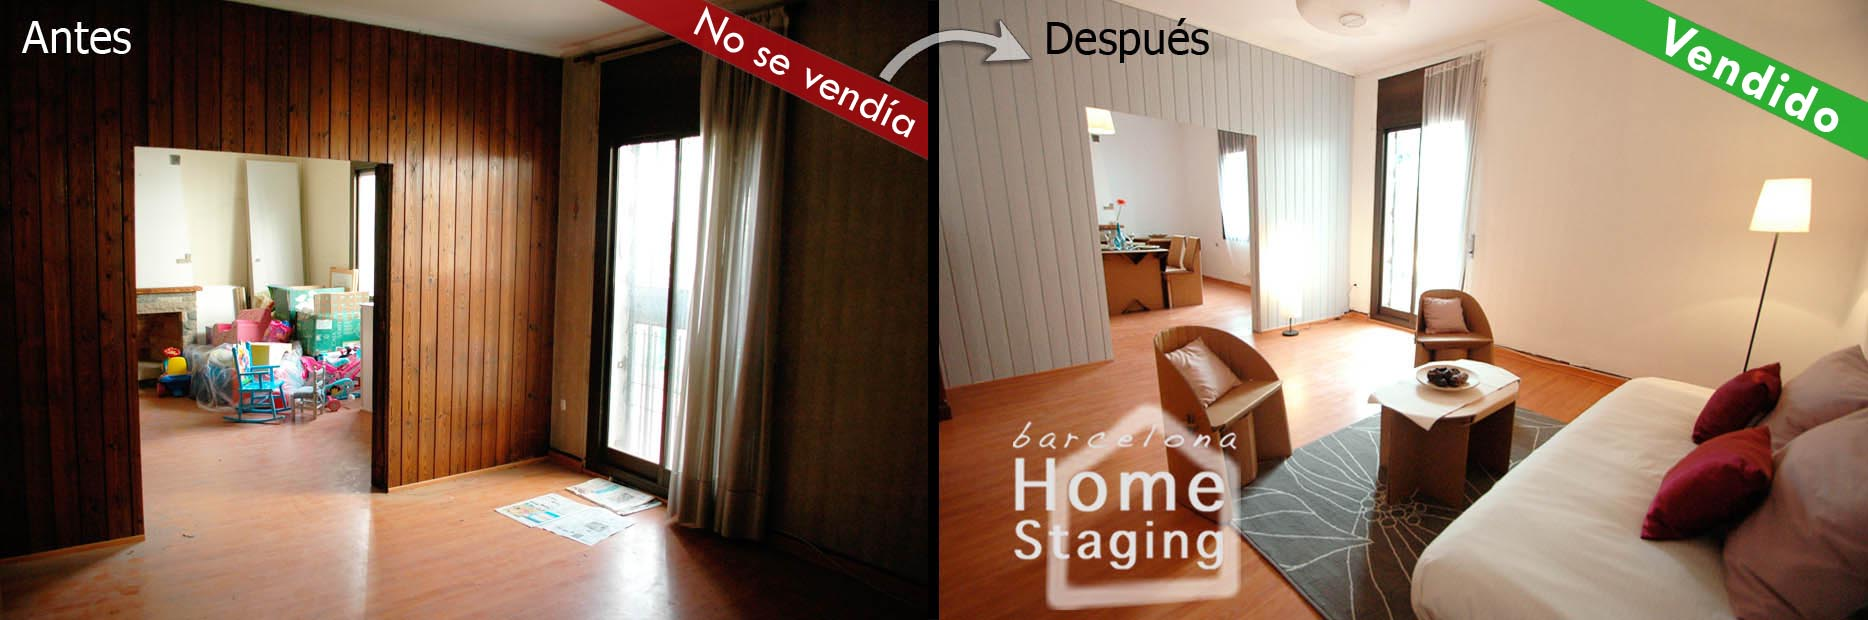 Matthieu bouchon barcelona home staging idealista news - Barcelona home staging ...